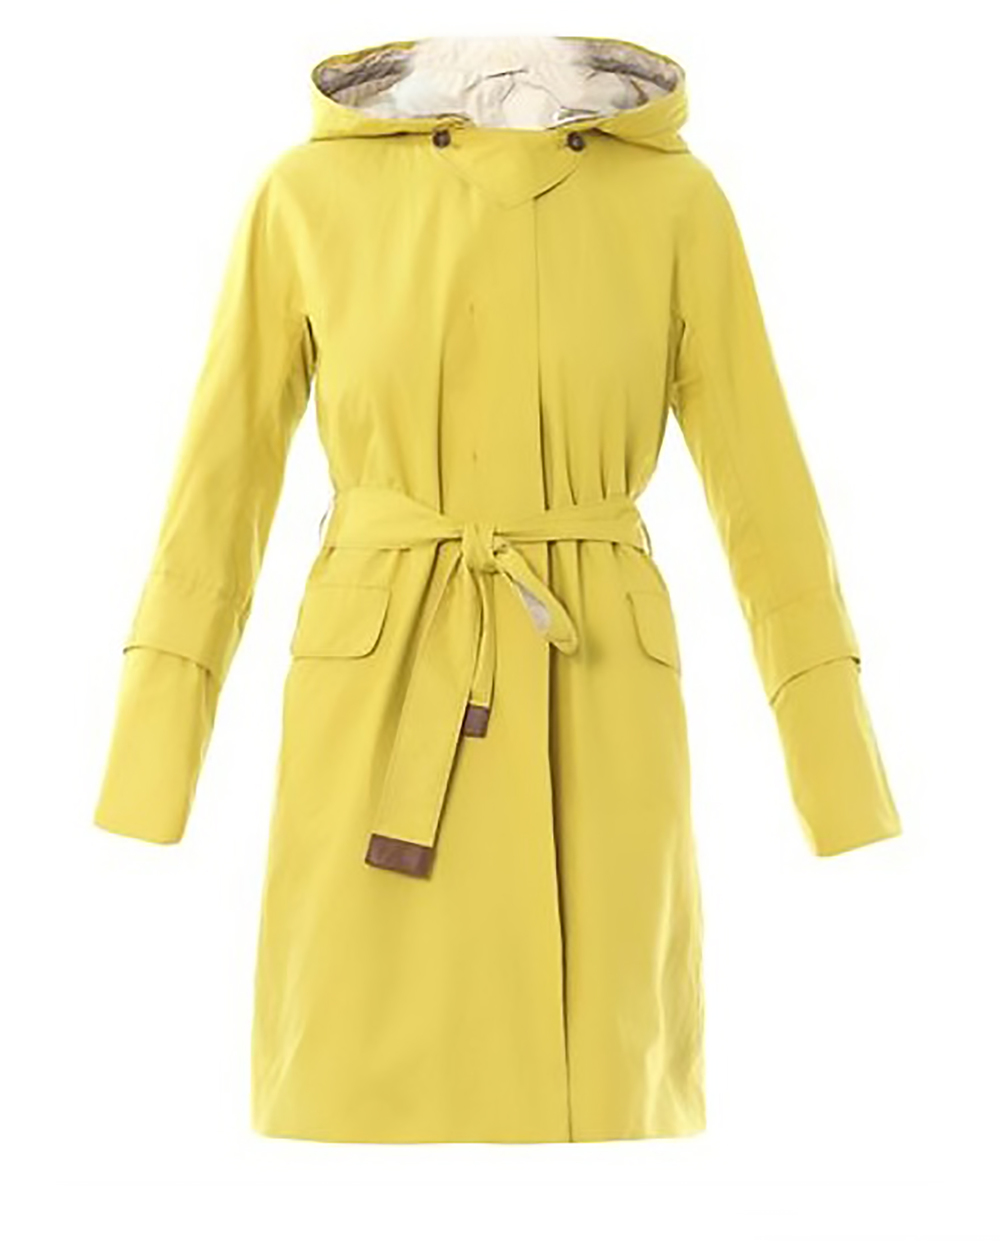 matches s maxmara desert coat rain gear 1500.jpg